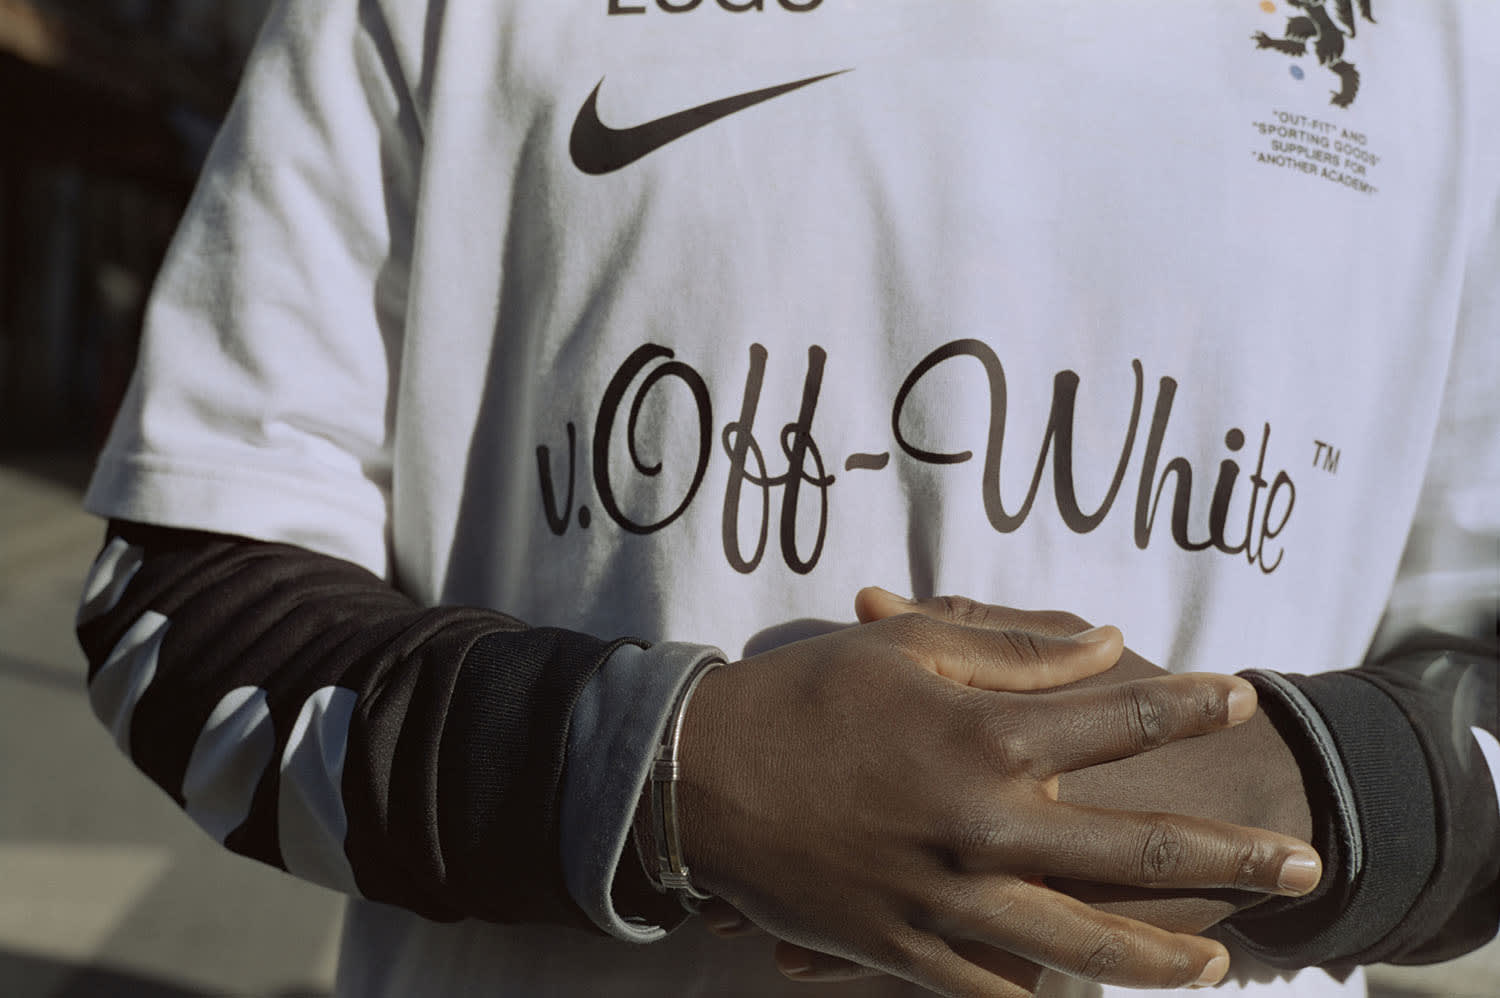 Off-White x Nike Football Mon Amour Collection (20)